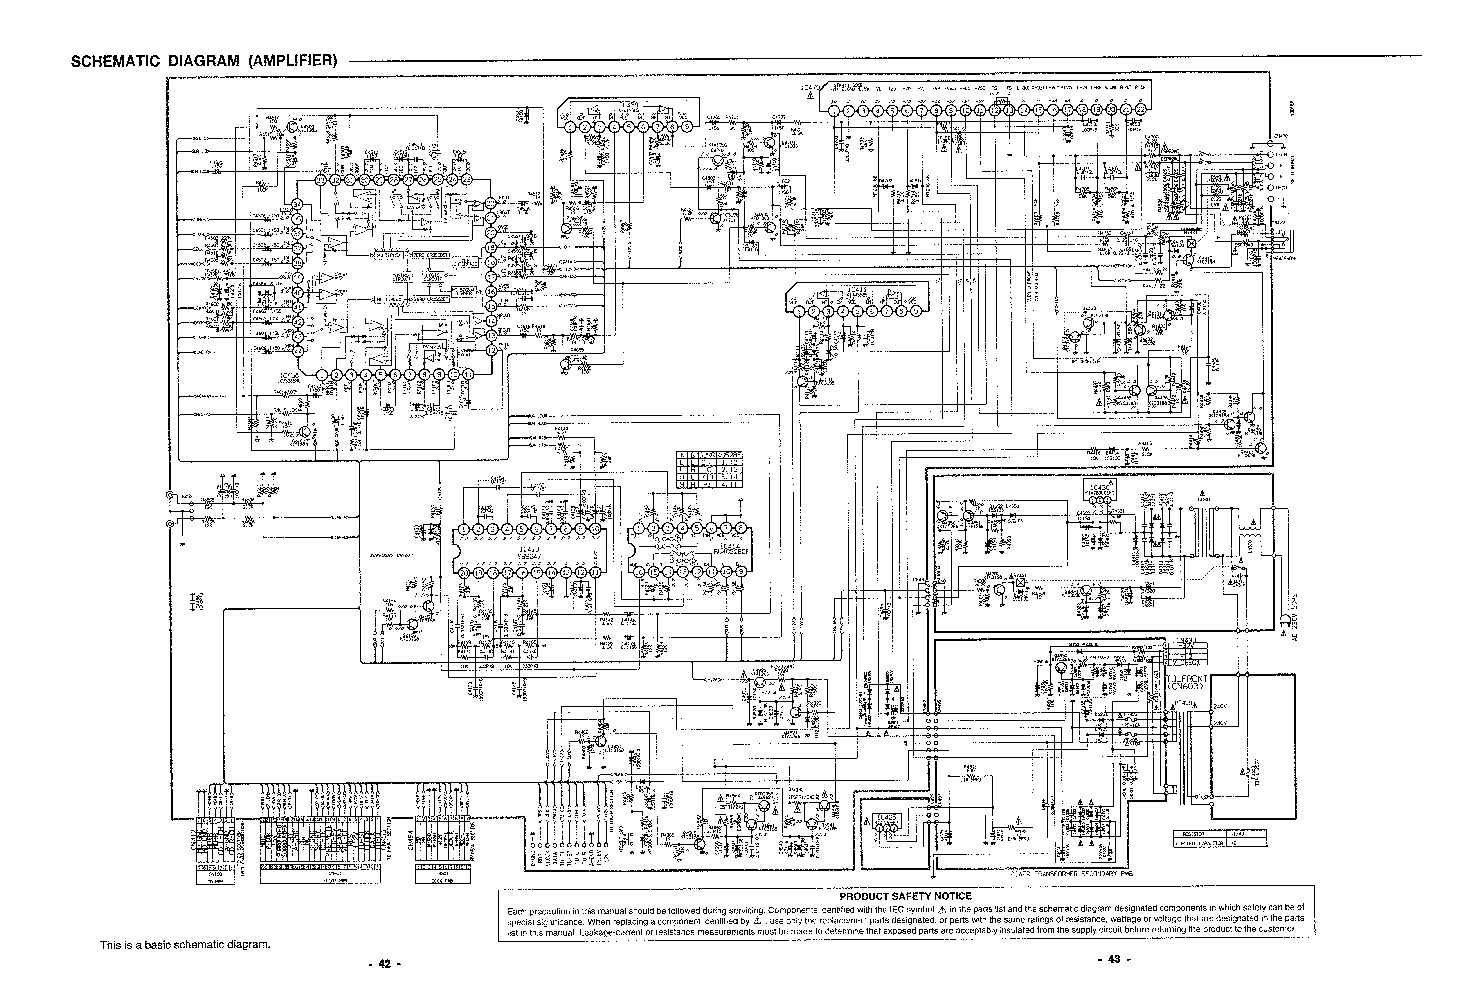 hight resolution of sanyo schematic diagram wiring diagram magnavox schematic diagram sanyo dc c70 amp sch service manual download